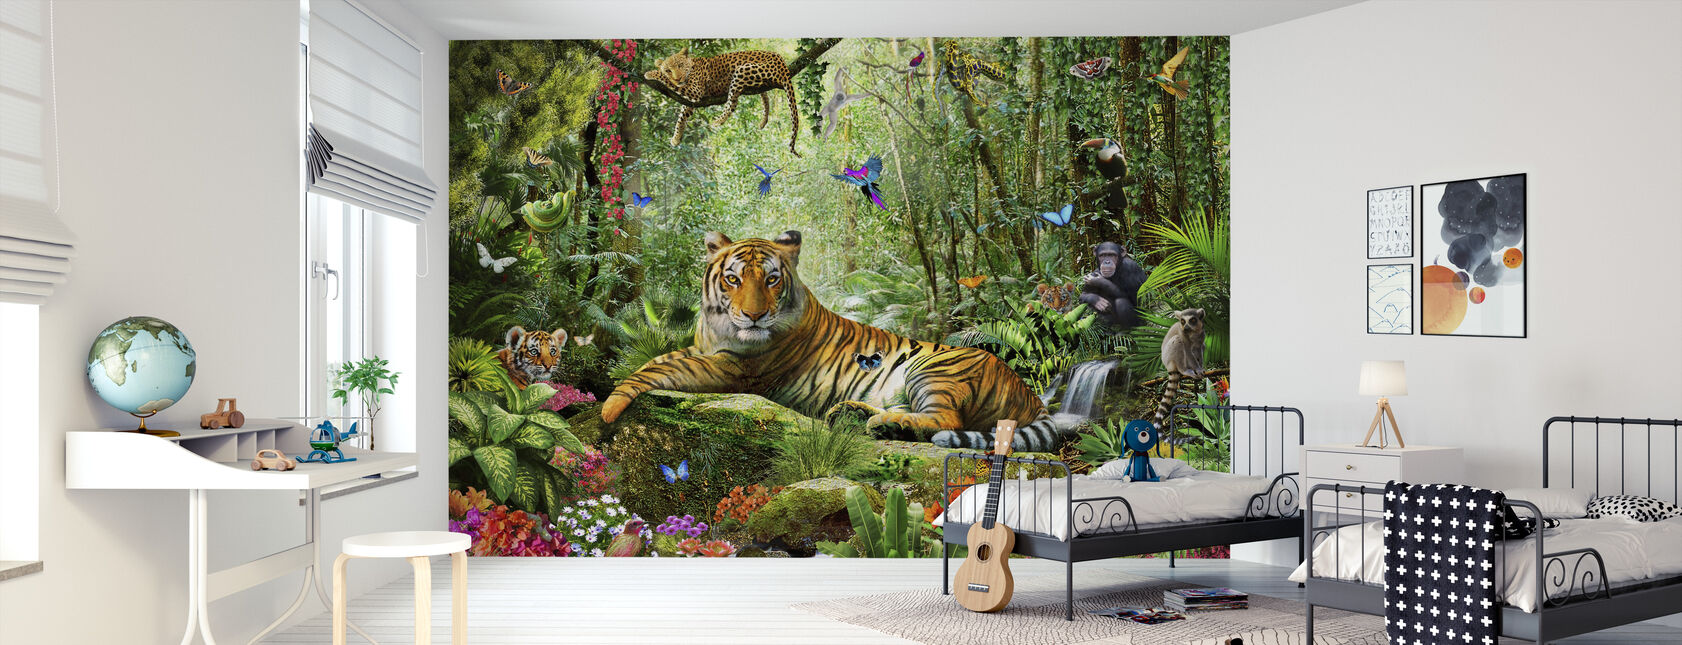 Tiger In The Jungle - Wallpaper - Kids Room